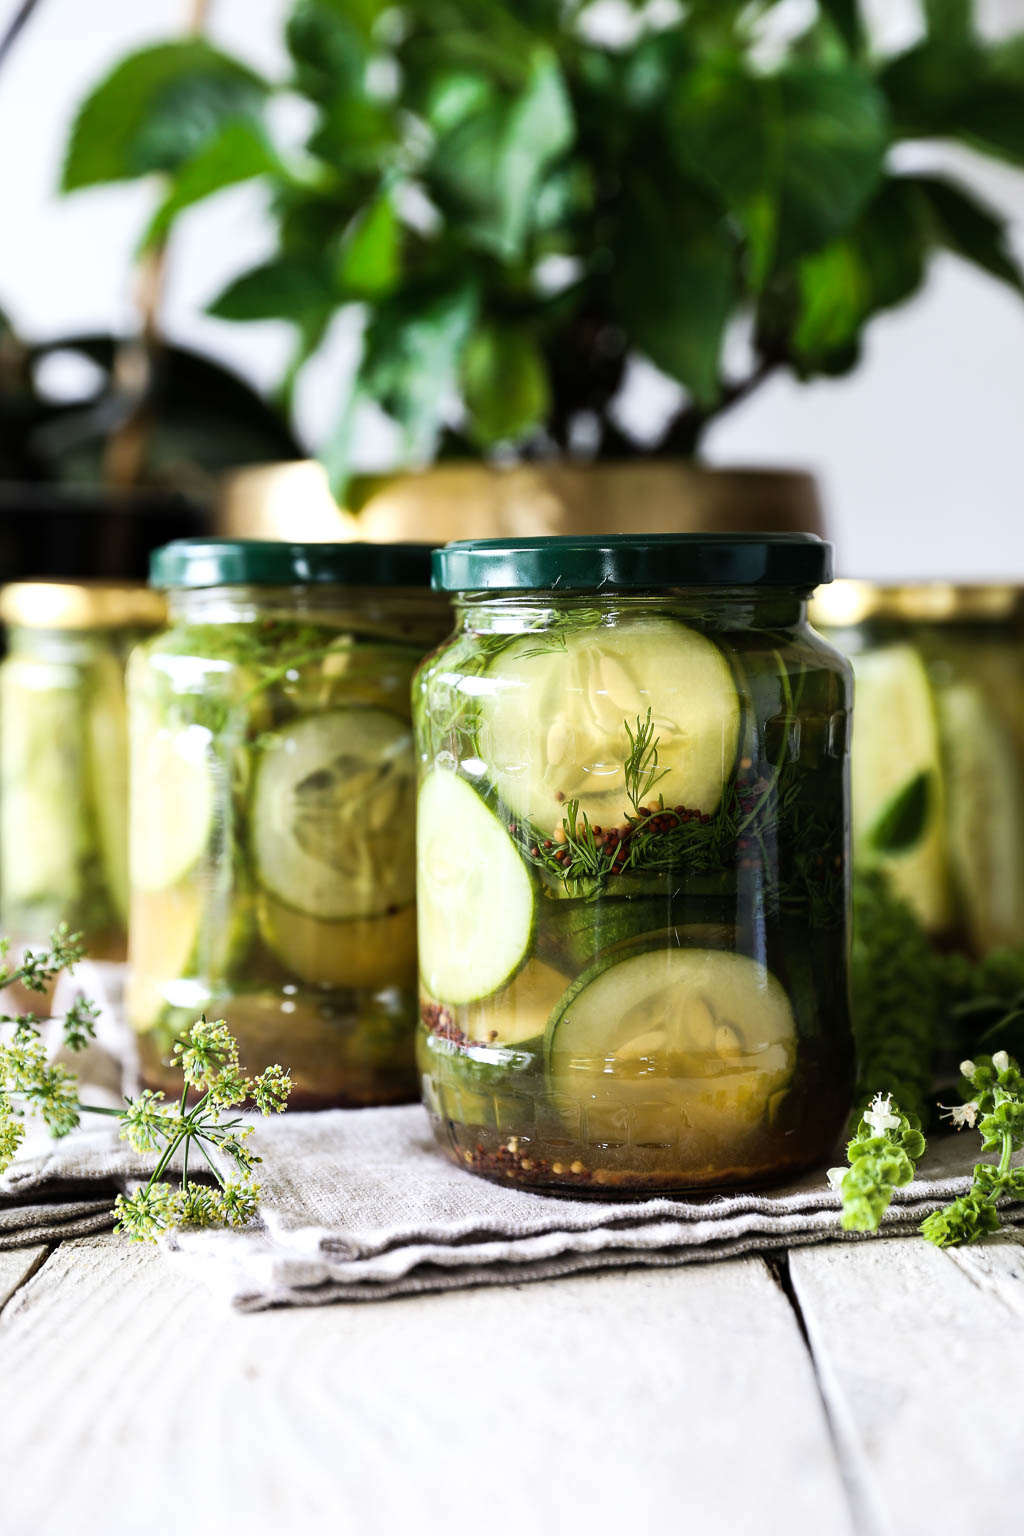 Quick Dill Pickled Cucumbers